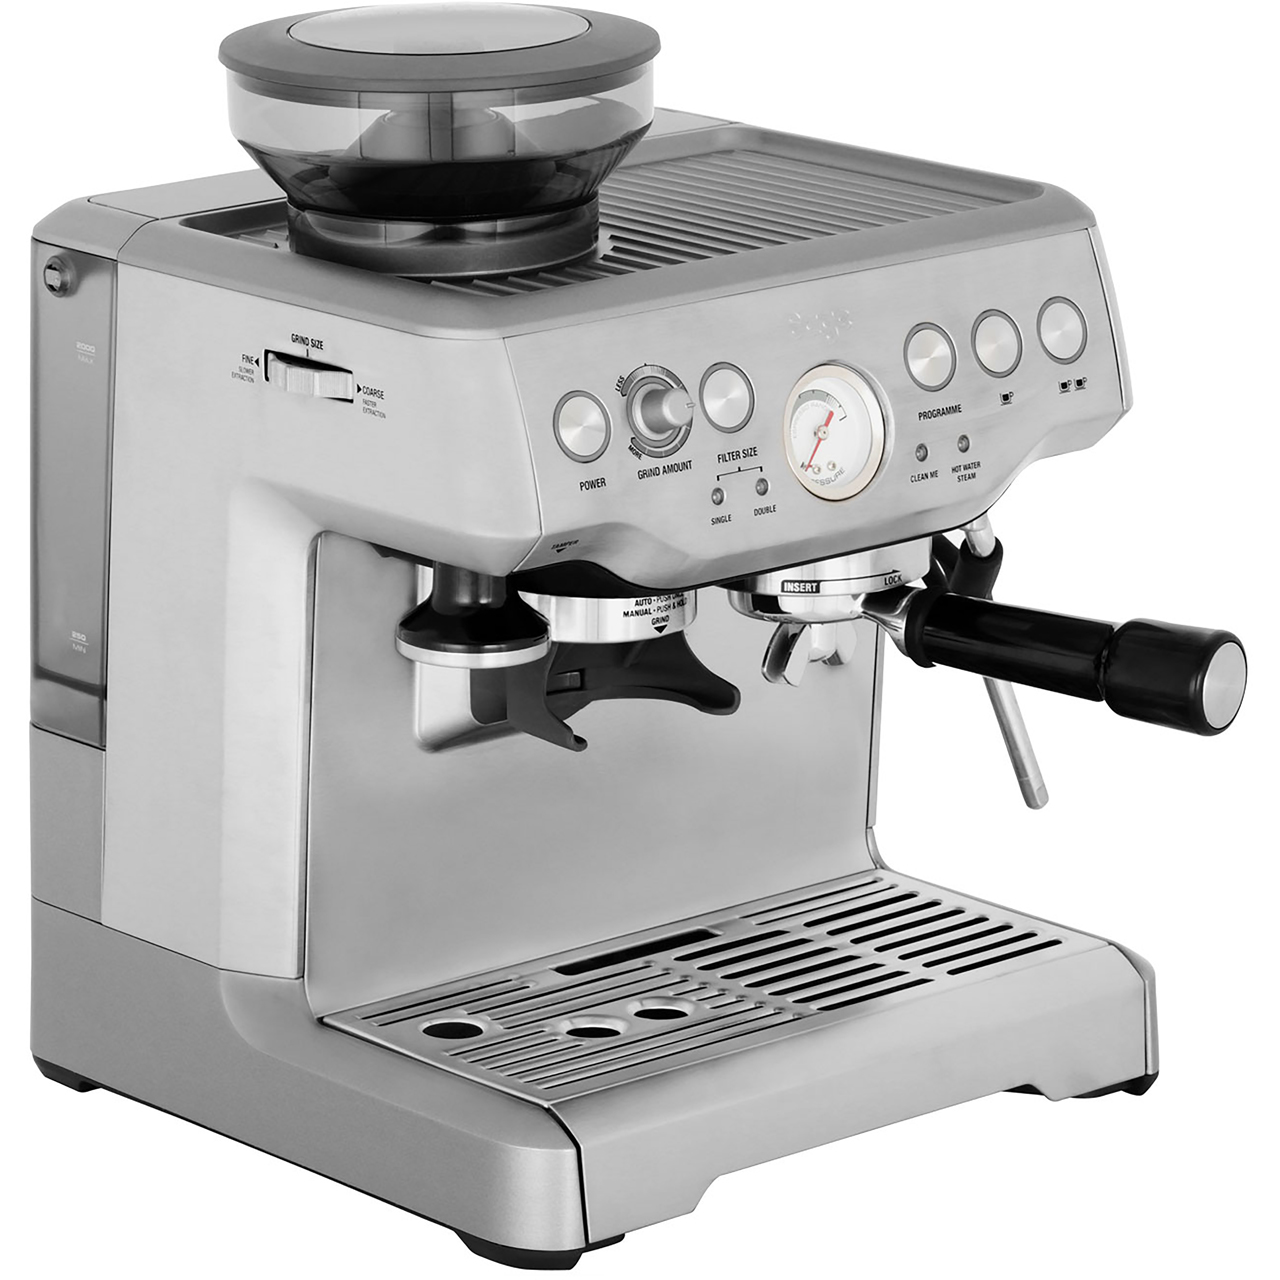 Machine A Cafe Sage The Barista Express Bes875uk Espresso Coffee Machine With Integrated Burr Grinder Brushed Steel